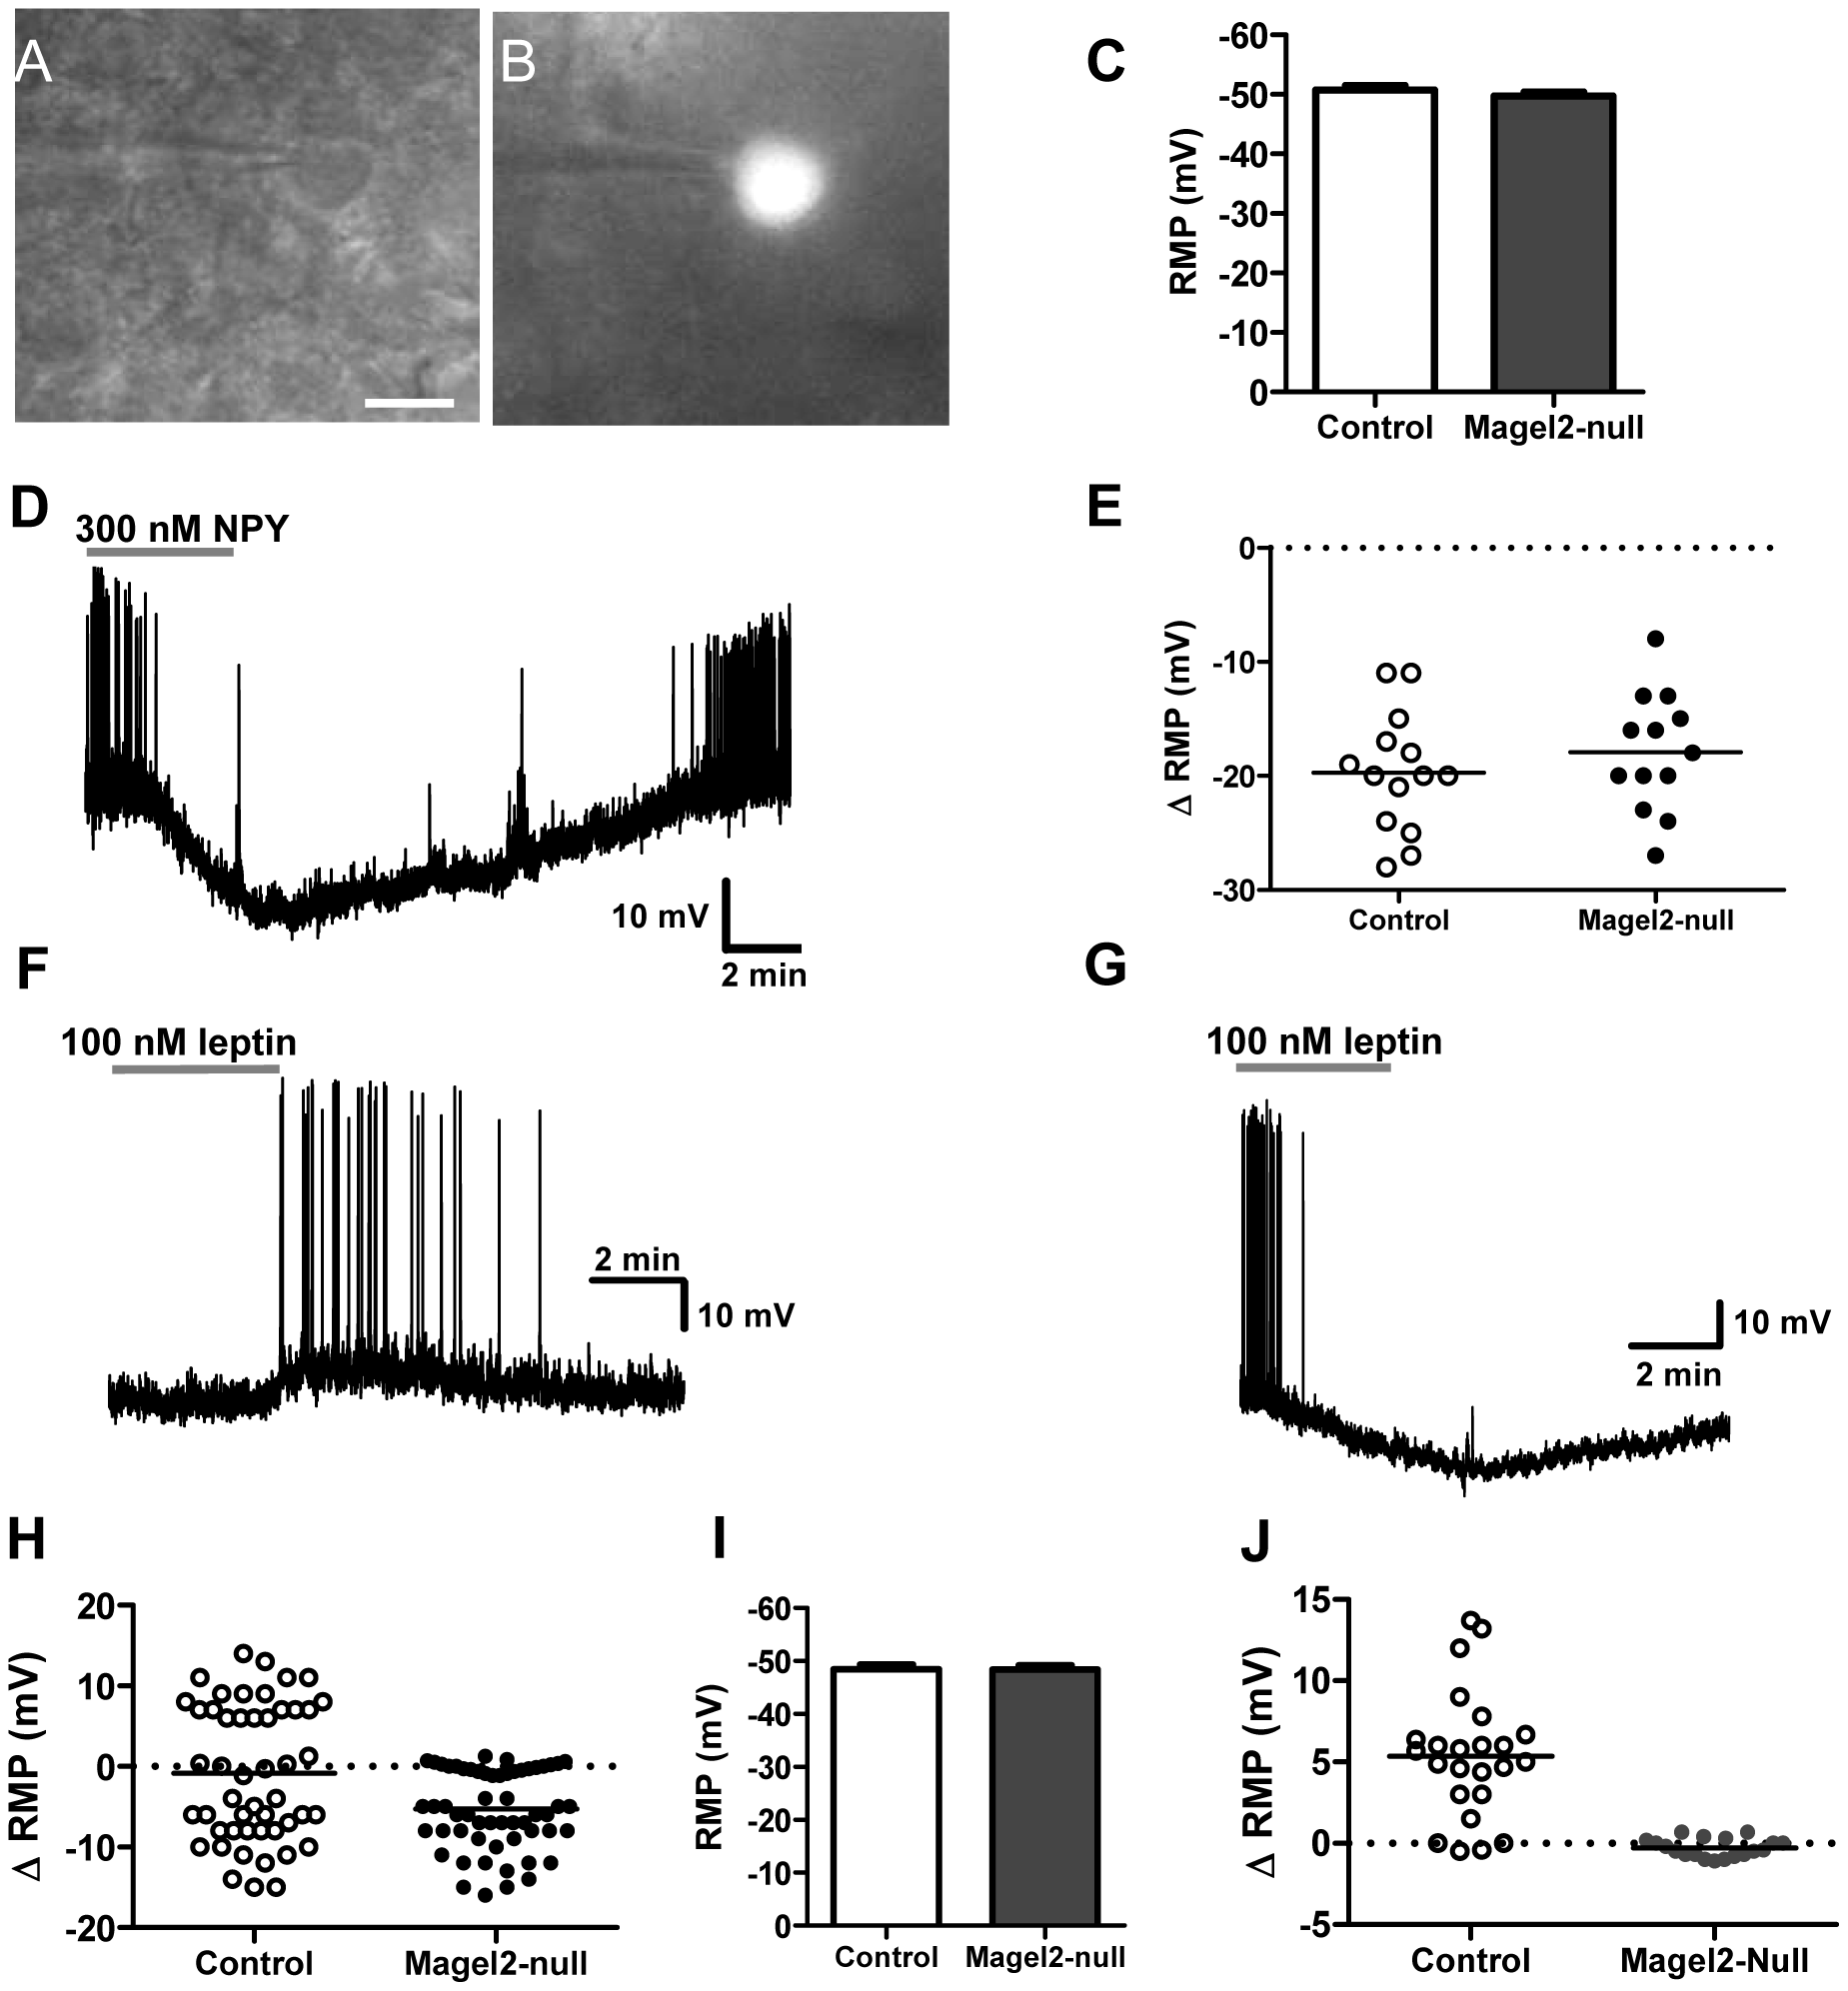 Magel2 is required for the leptin-induced depolarizing response in POMC neurons.